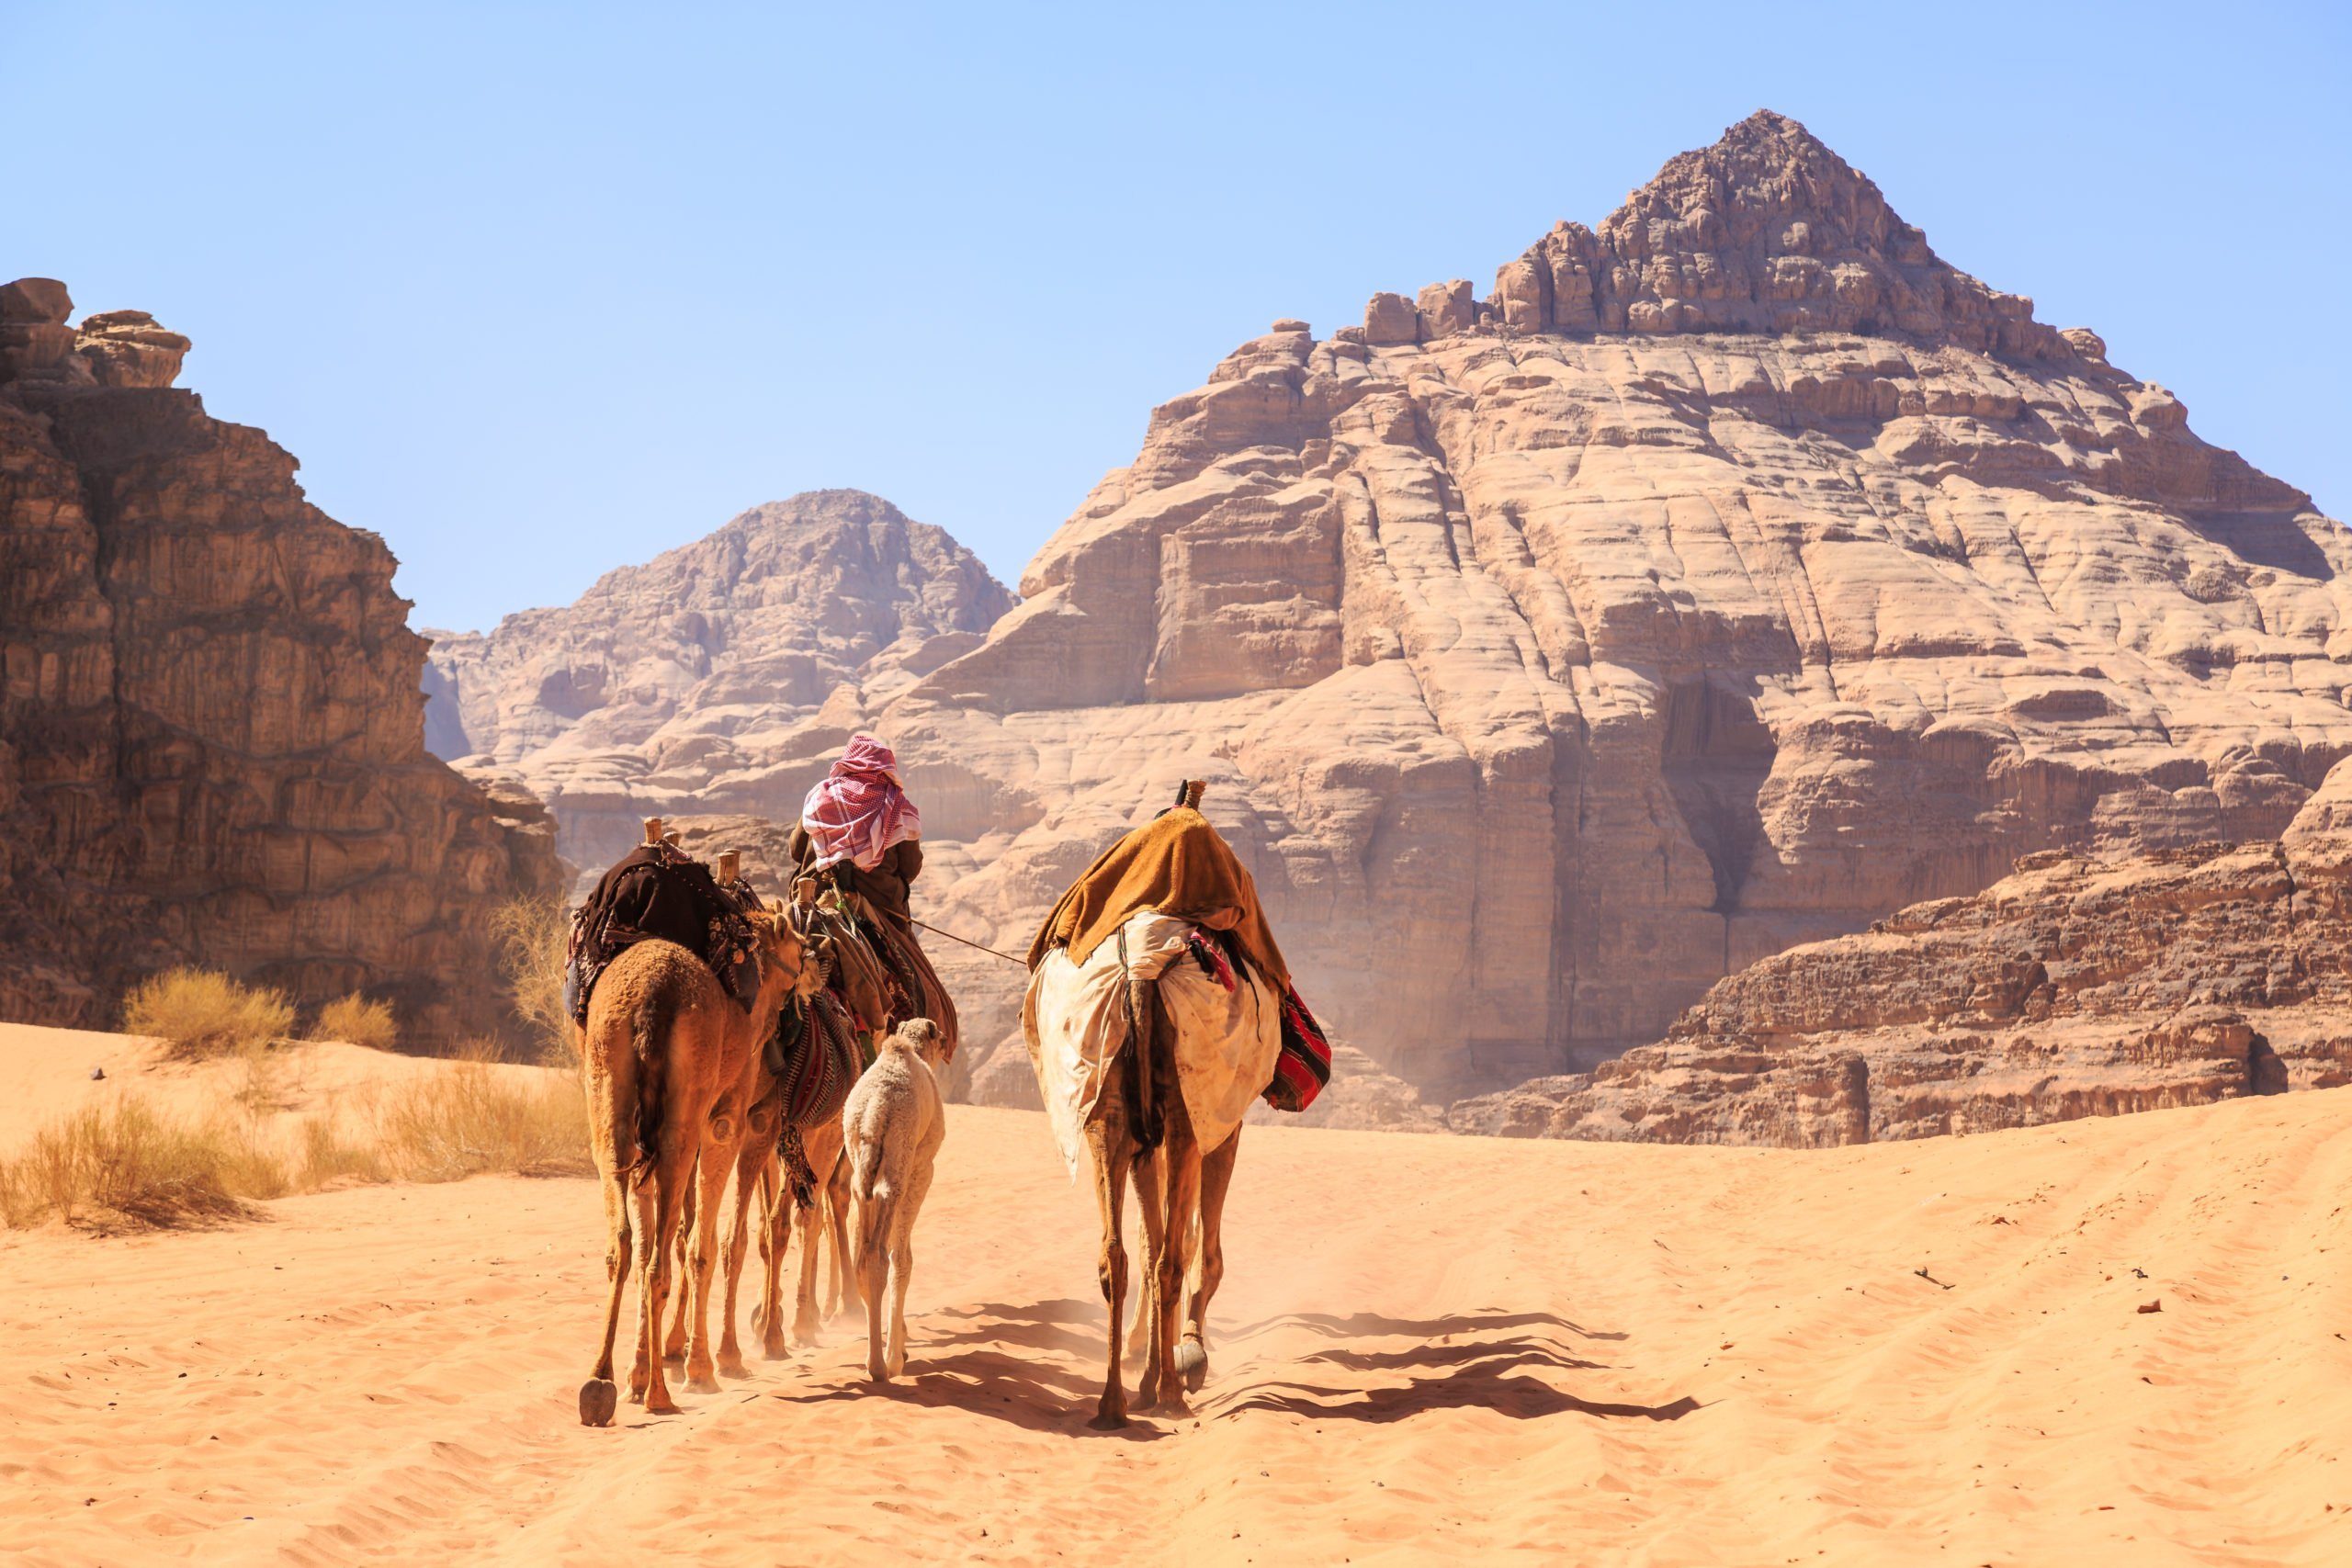 Discover The Different Sites Of Wadi Rum On The Wadi Rum Jeep Tour Safari From Aqaba